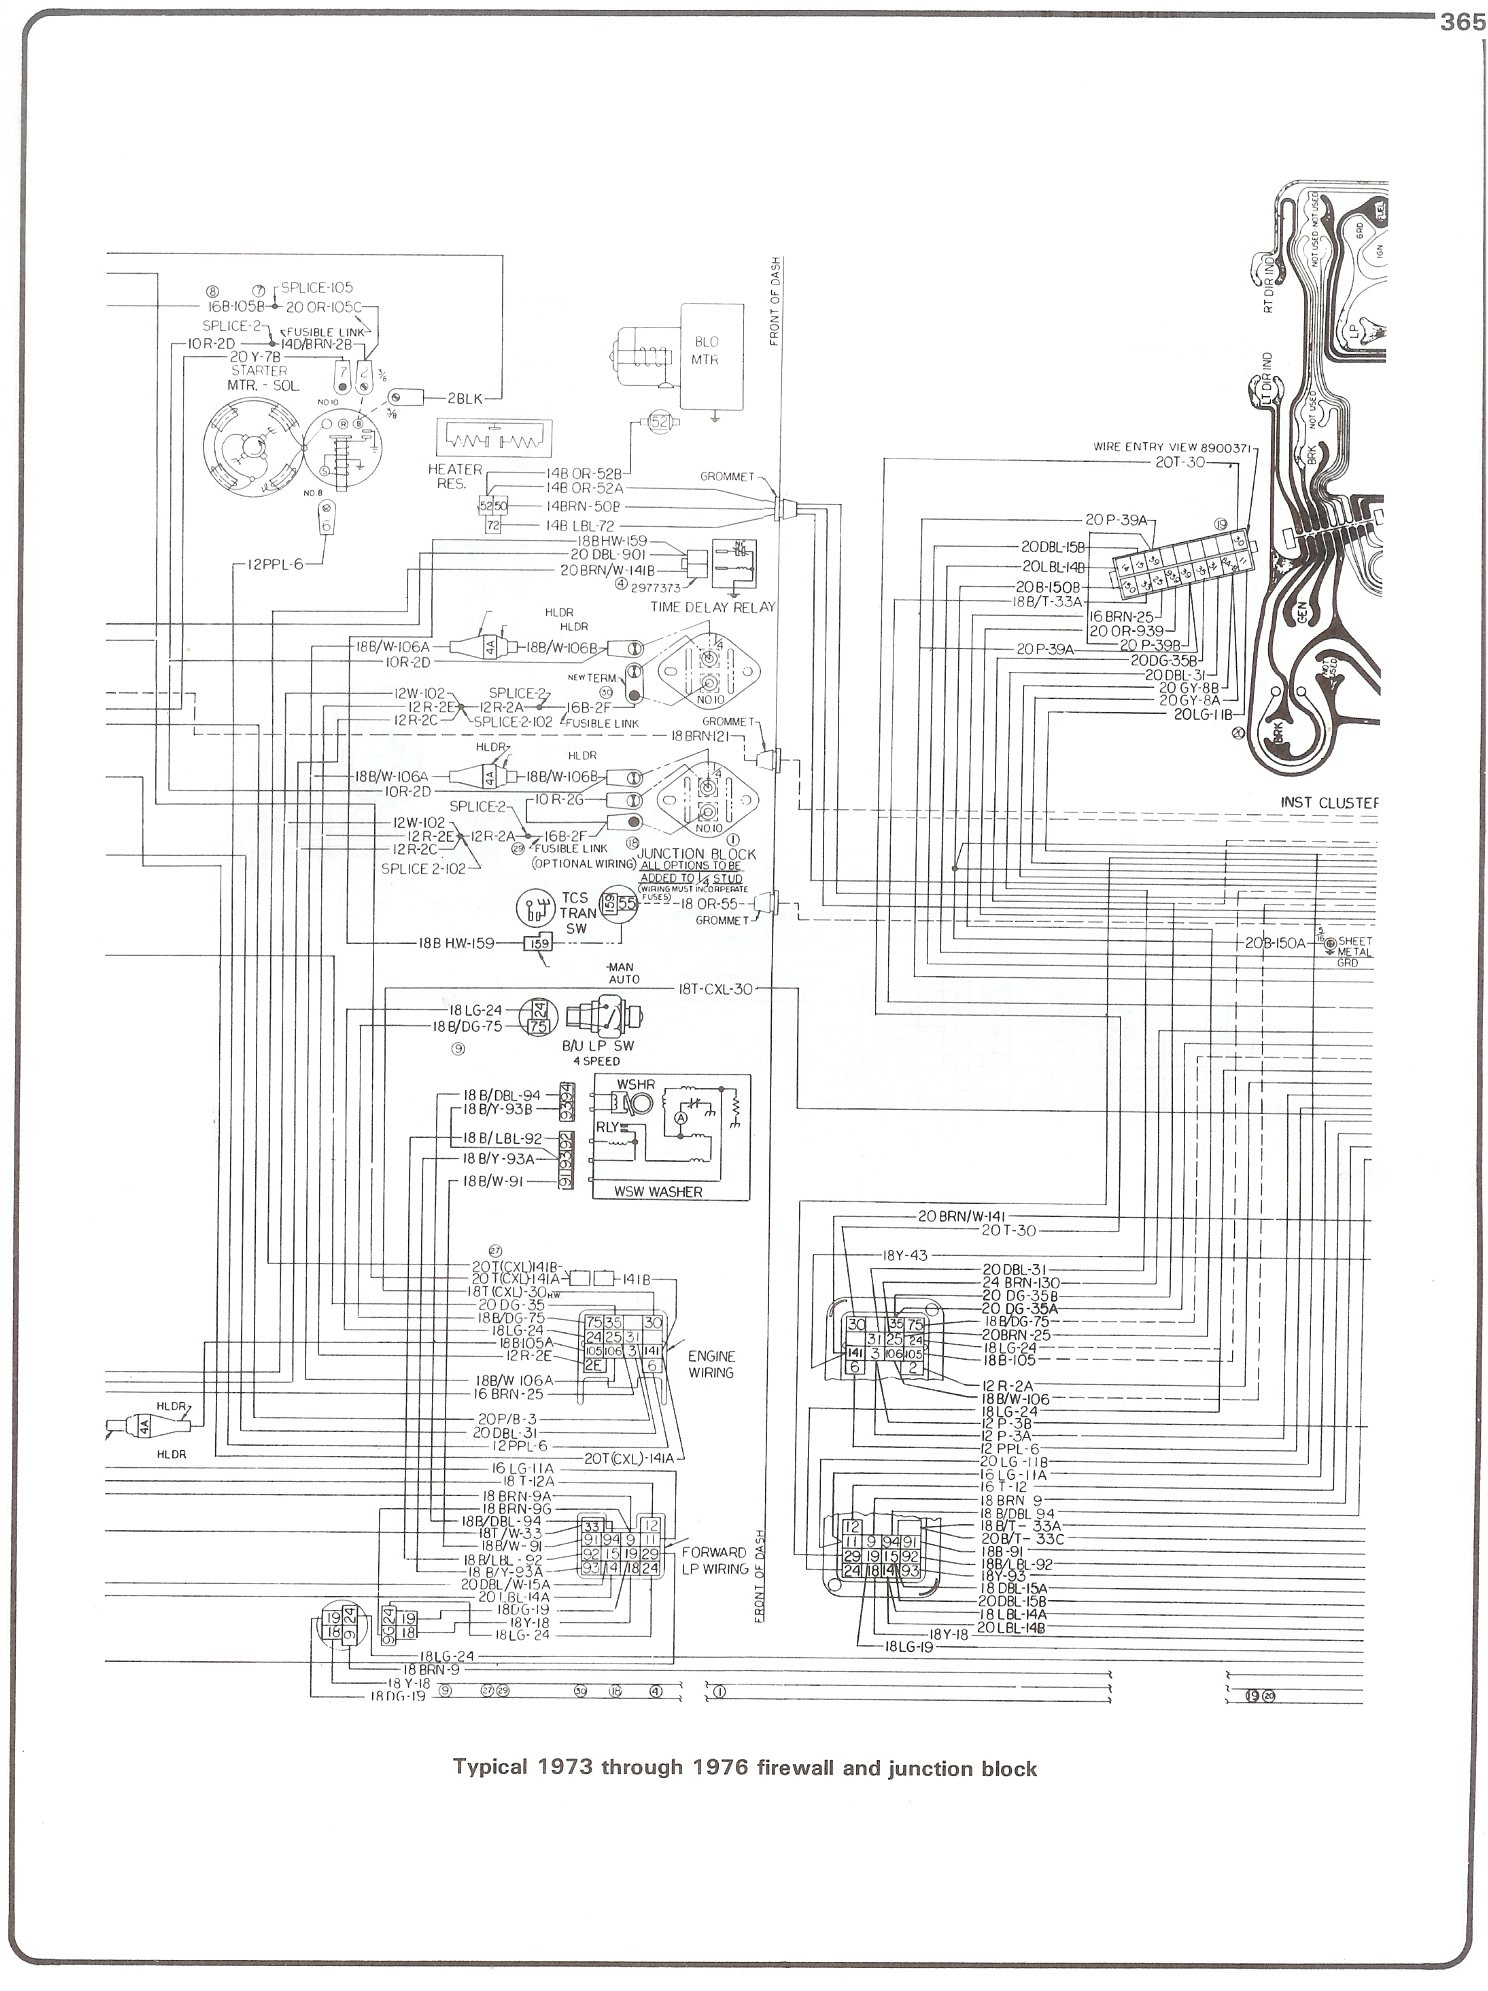 73 76_firewall_junct complete 73 87 wiring diagrams 1978 chevy truck fuse box diagram at crackthecode.co